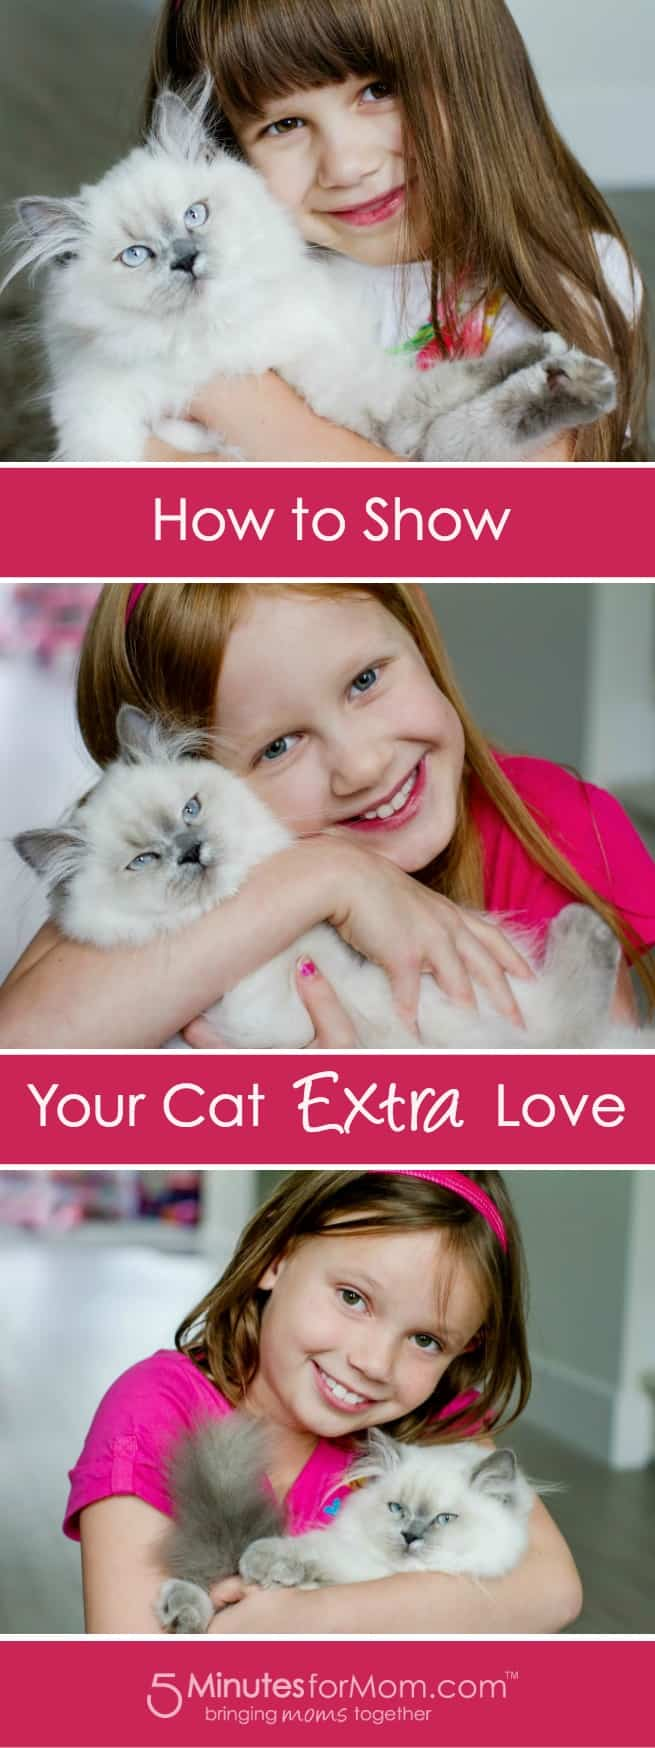 How to Show Your Cat Extra Love